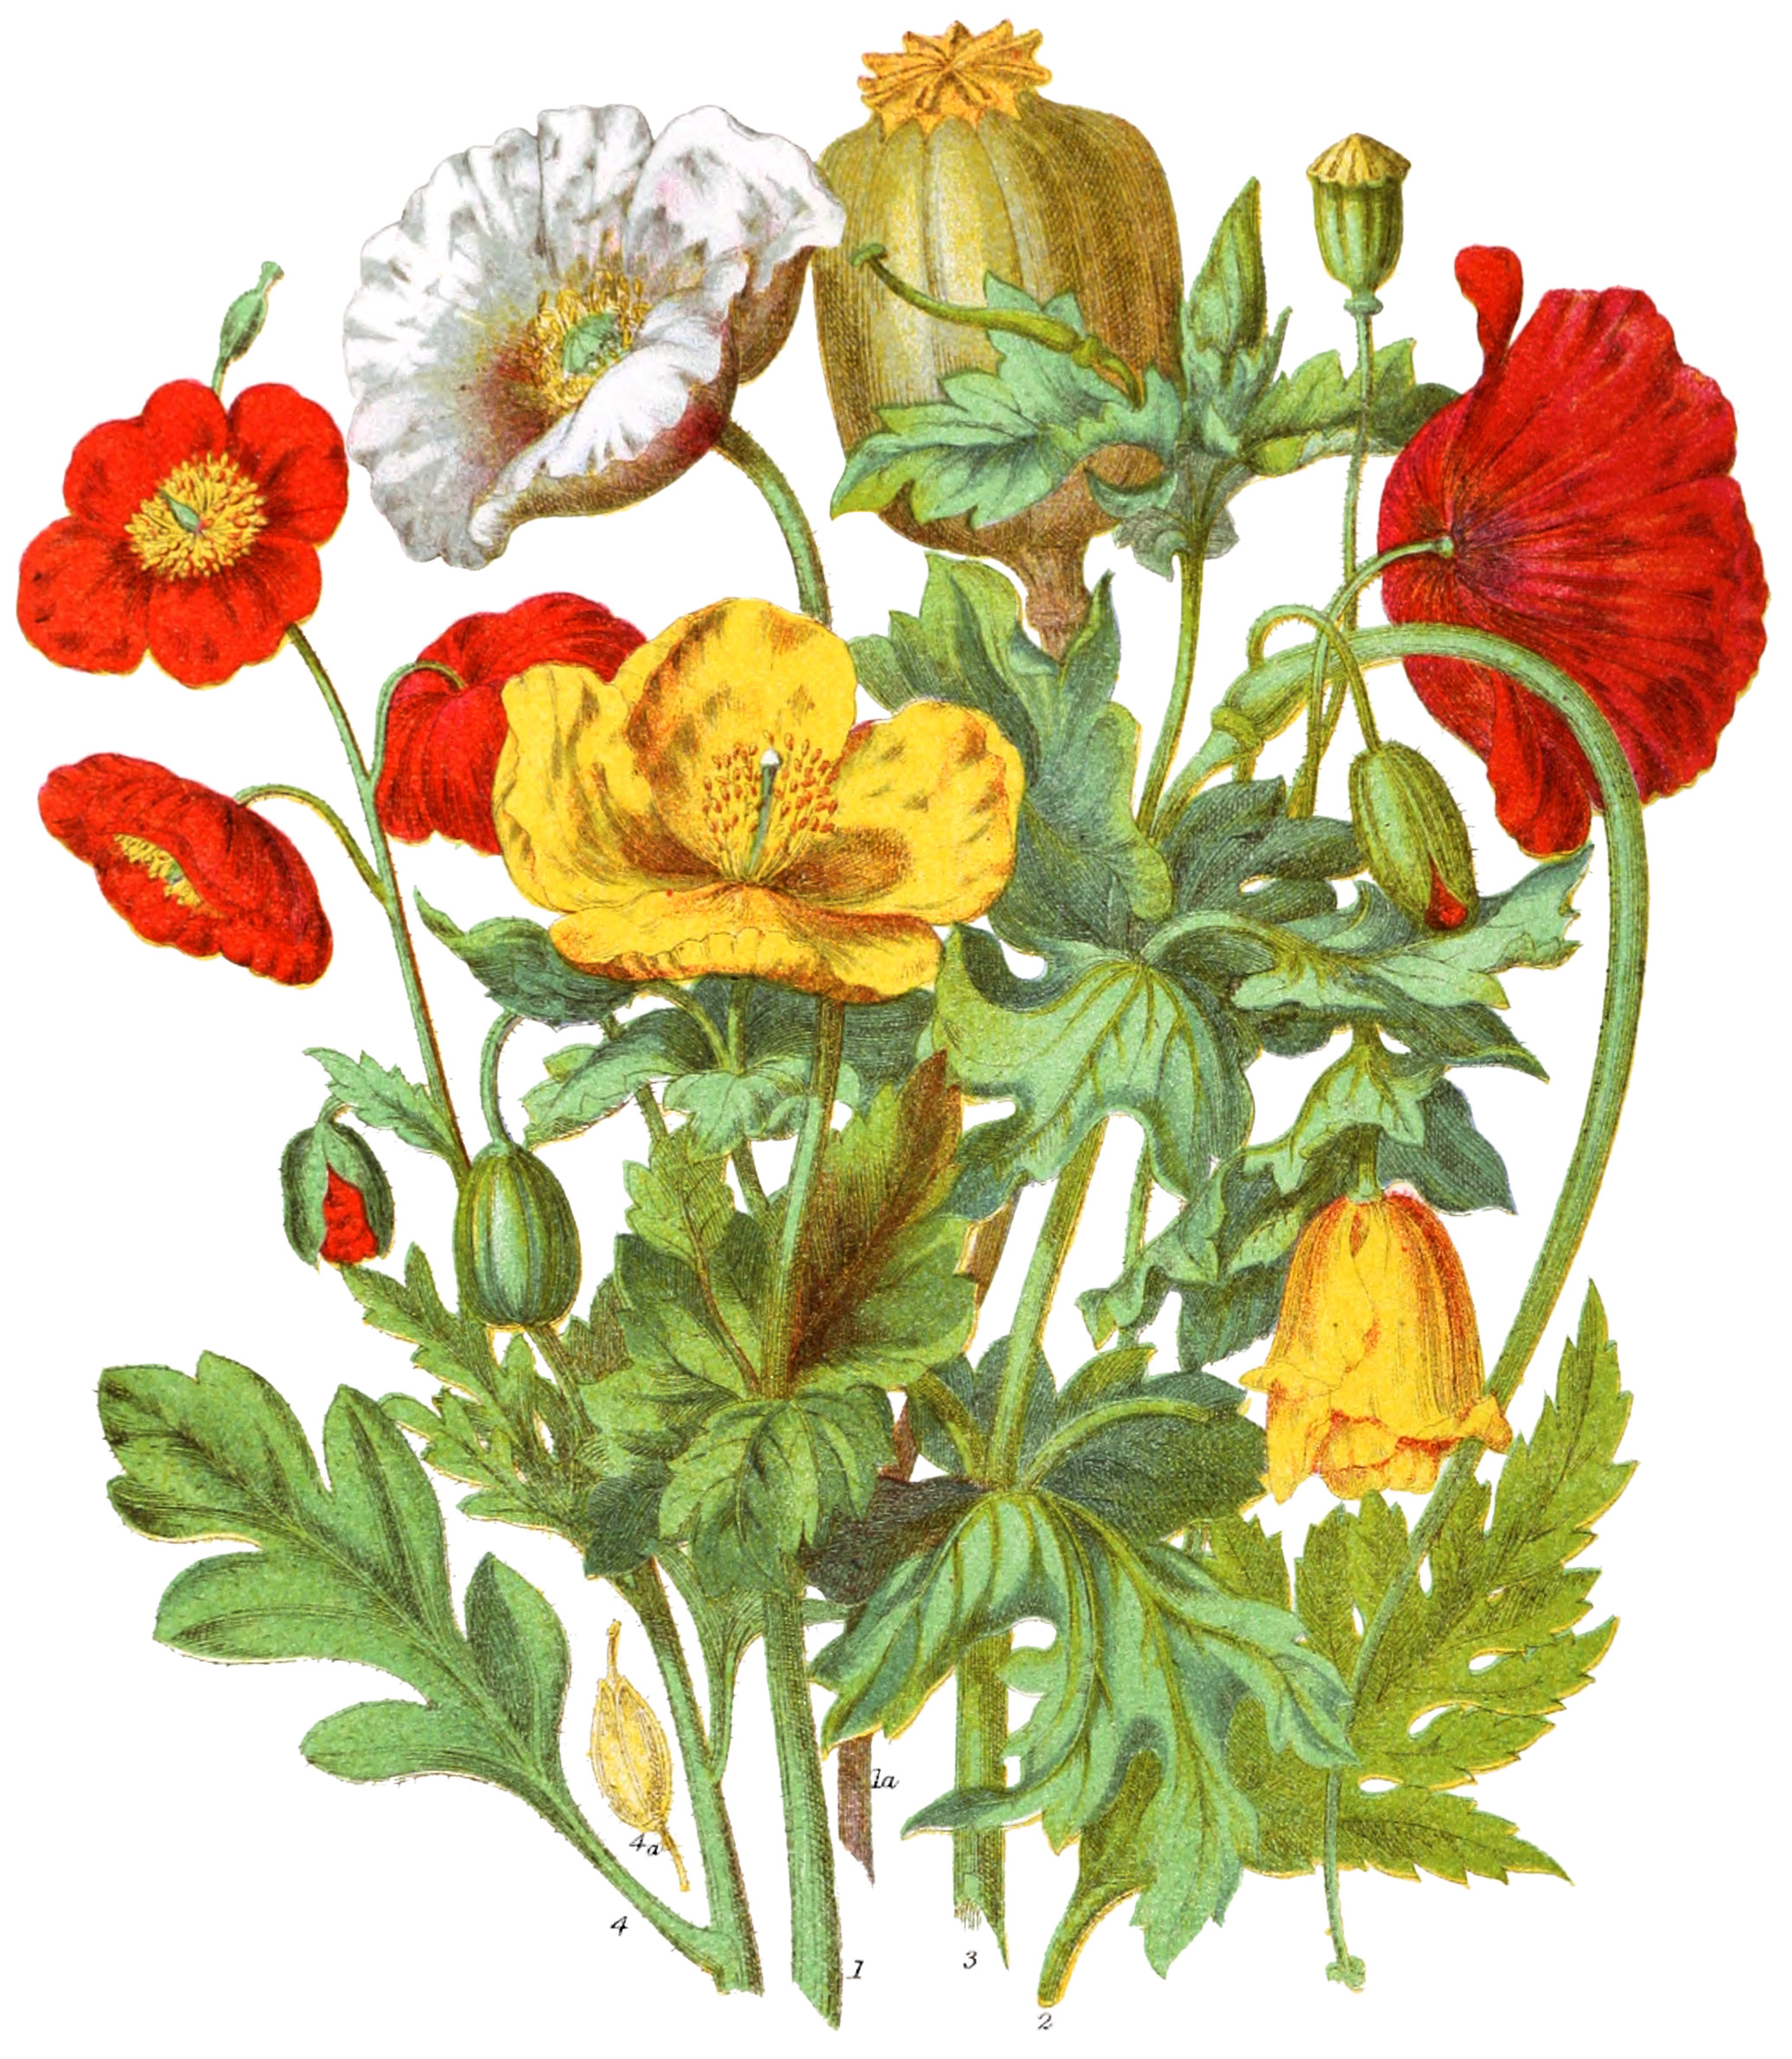 Vintage Botanical Prints - 64 in a series - Papaveraceæ, The Poppy Tribe from The Natural Order of Plants (1868)